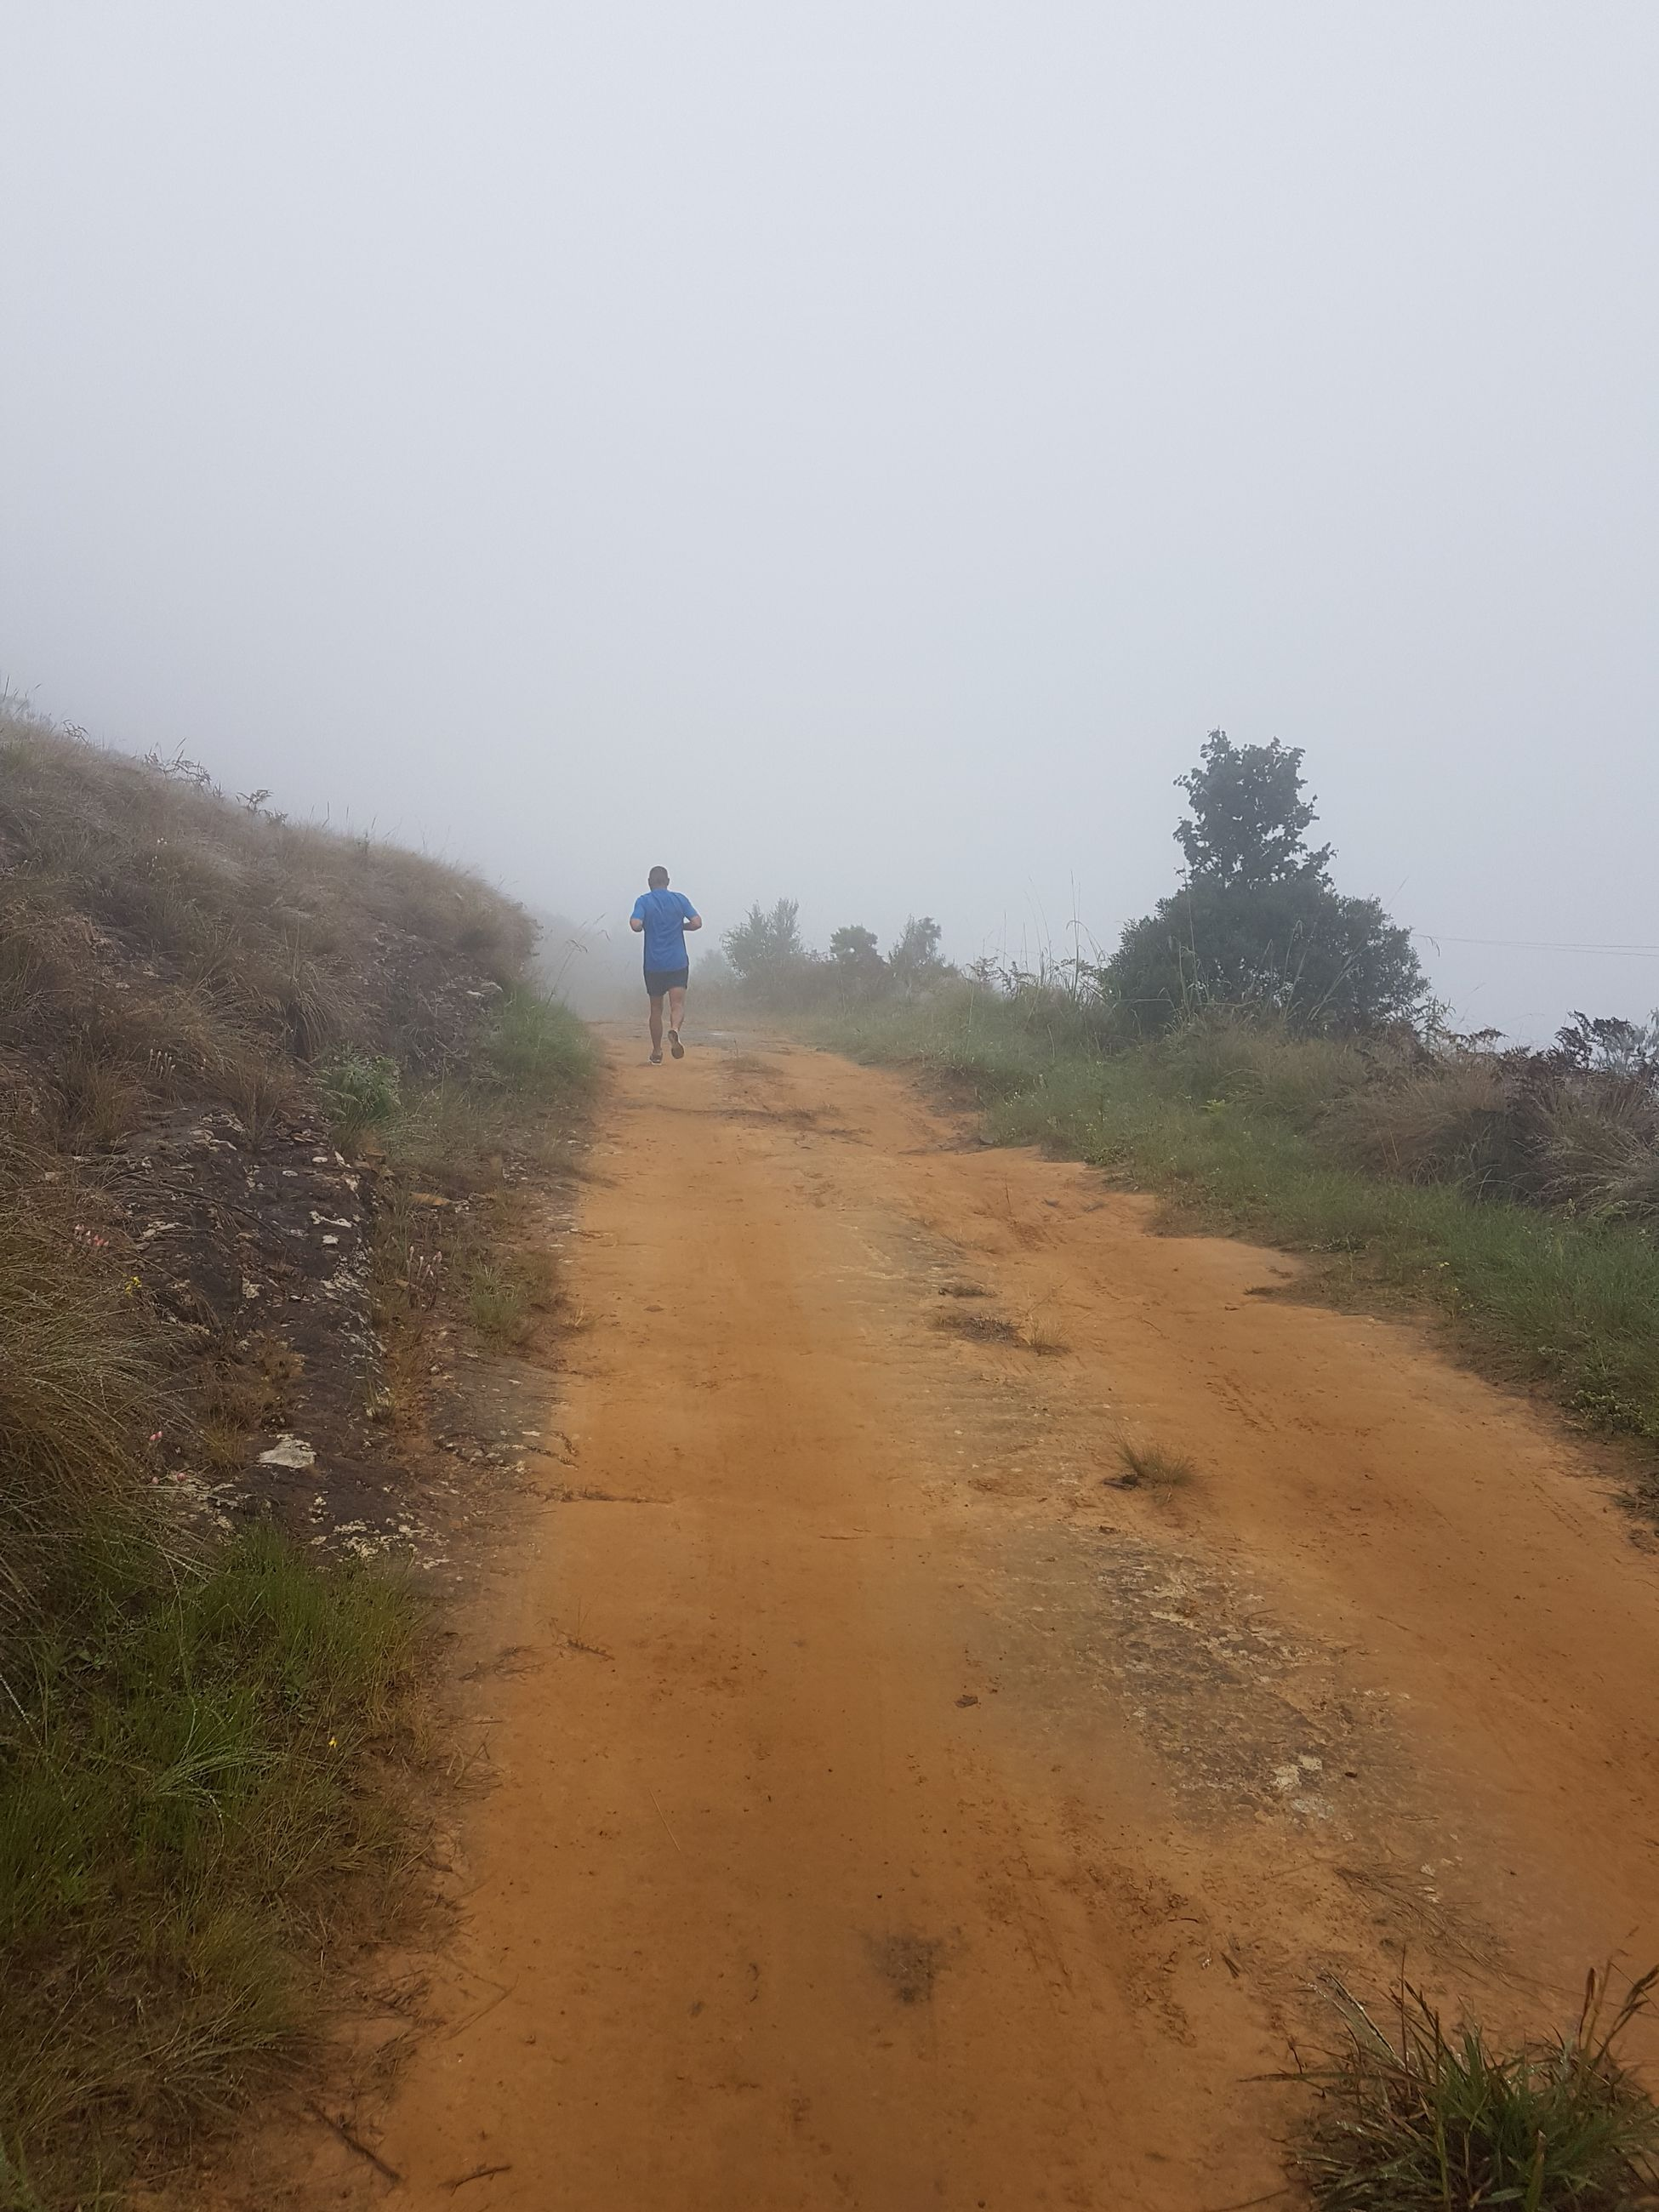 fog, sky, real people, direction, one person, walking, the way forward, nature, lifestyles, non-urban scene, rear view, full length, plant, road, leisure activity, beauty in nature, day, environment, land, outdoors